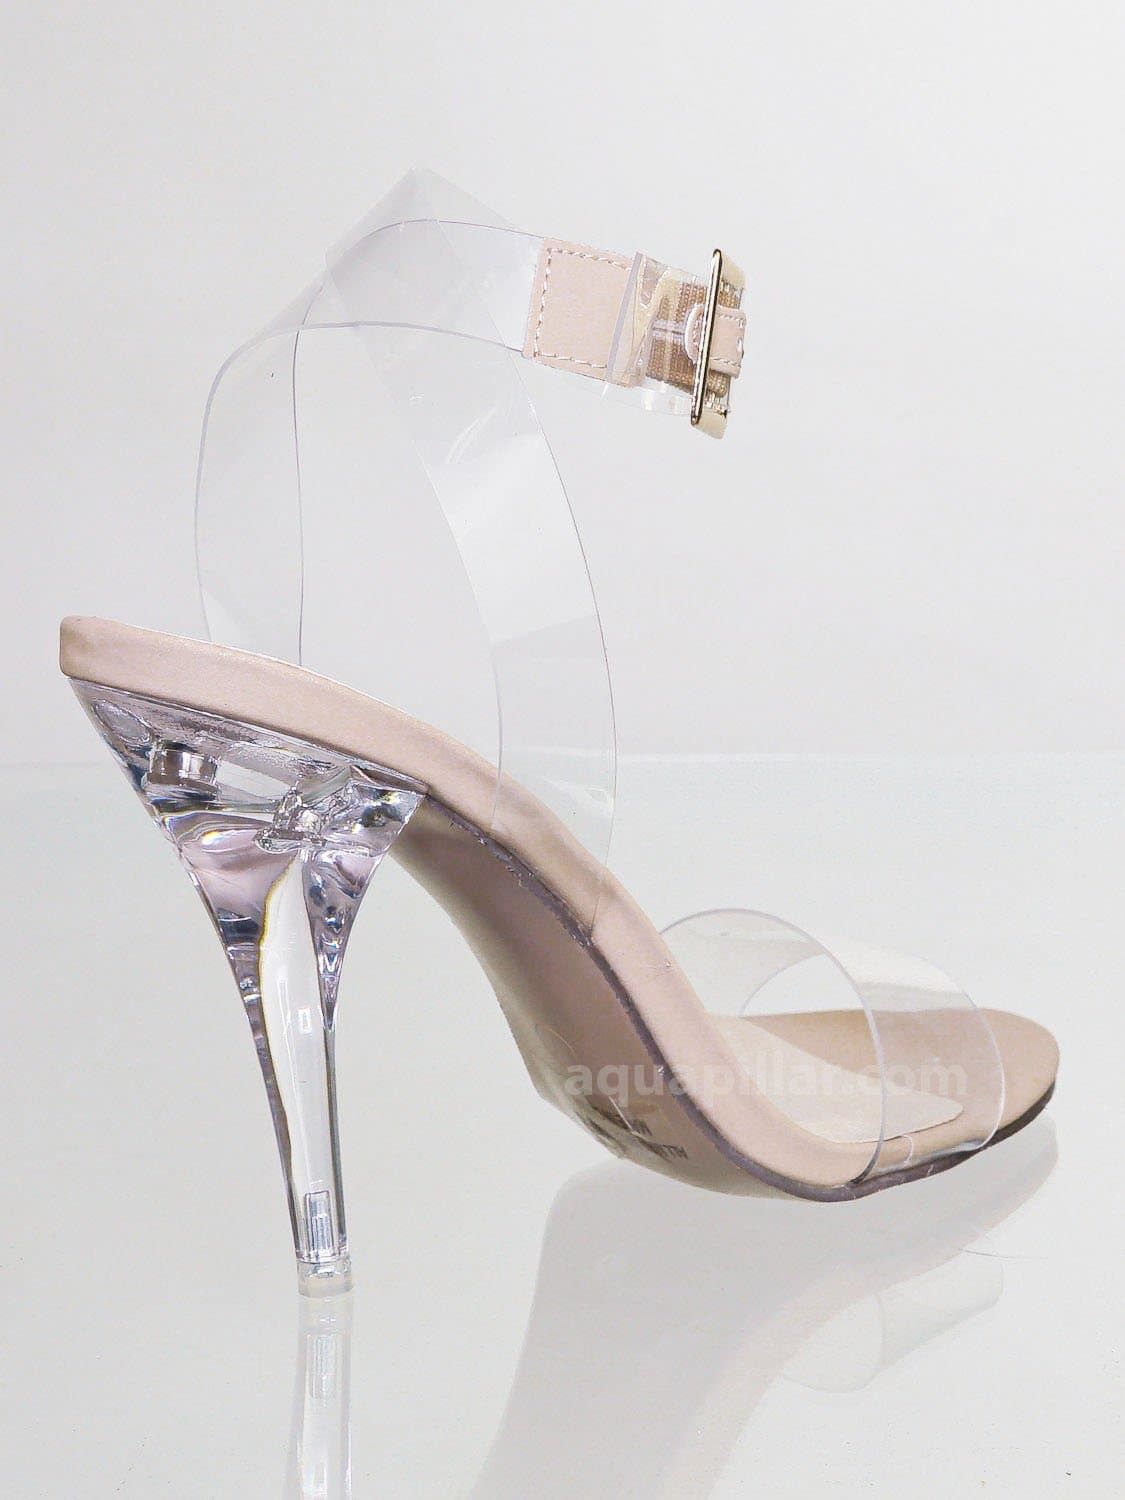 May2 ClrNudNb Clear Lucite Ankle Strap Sandal - Women Transparent Acrylic High Heel